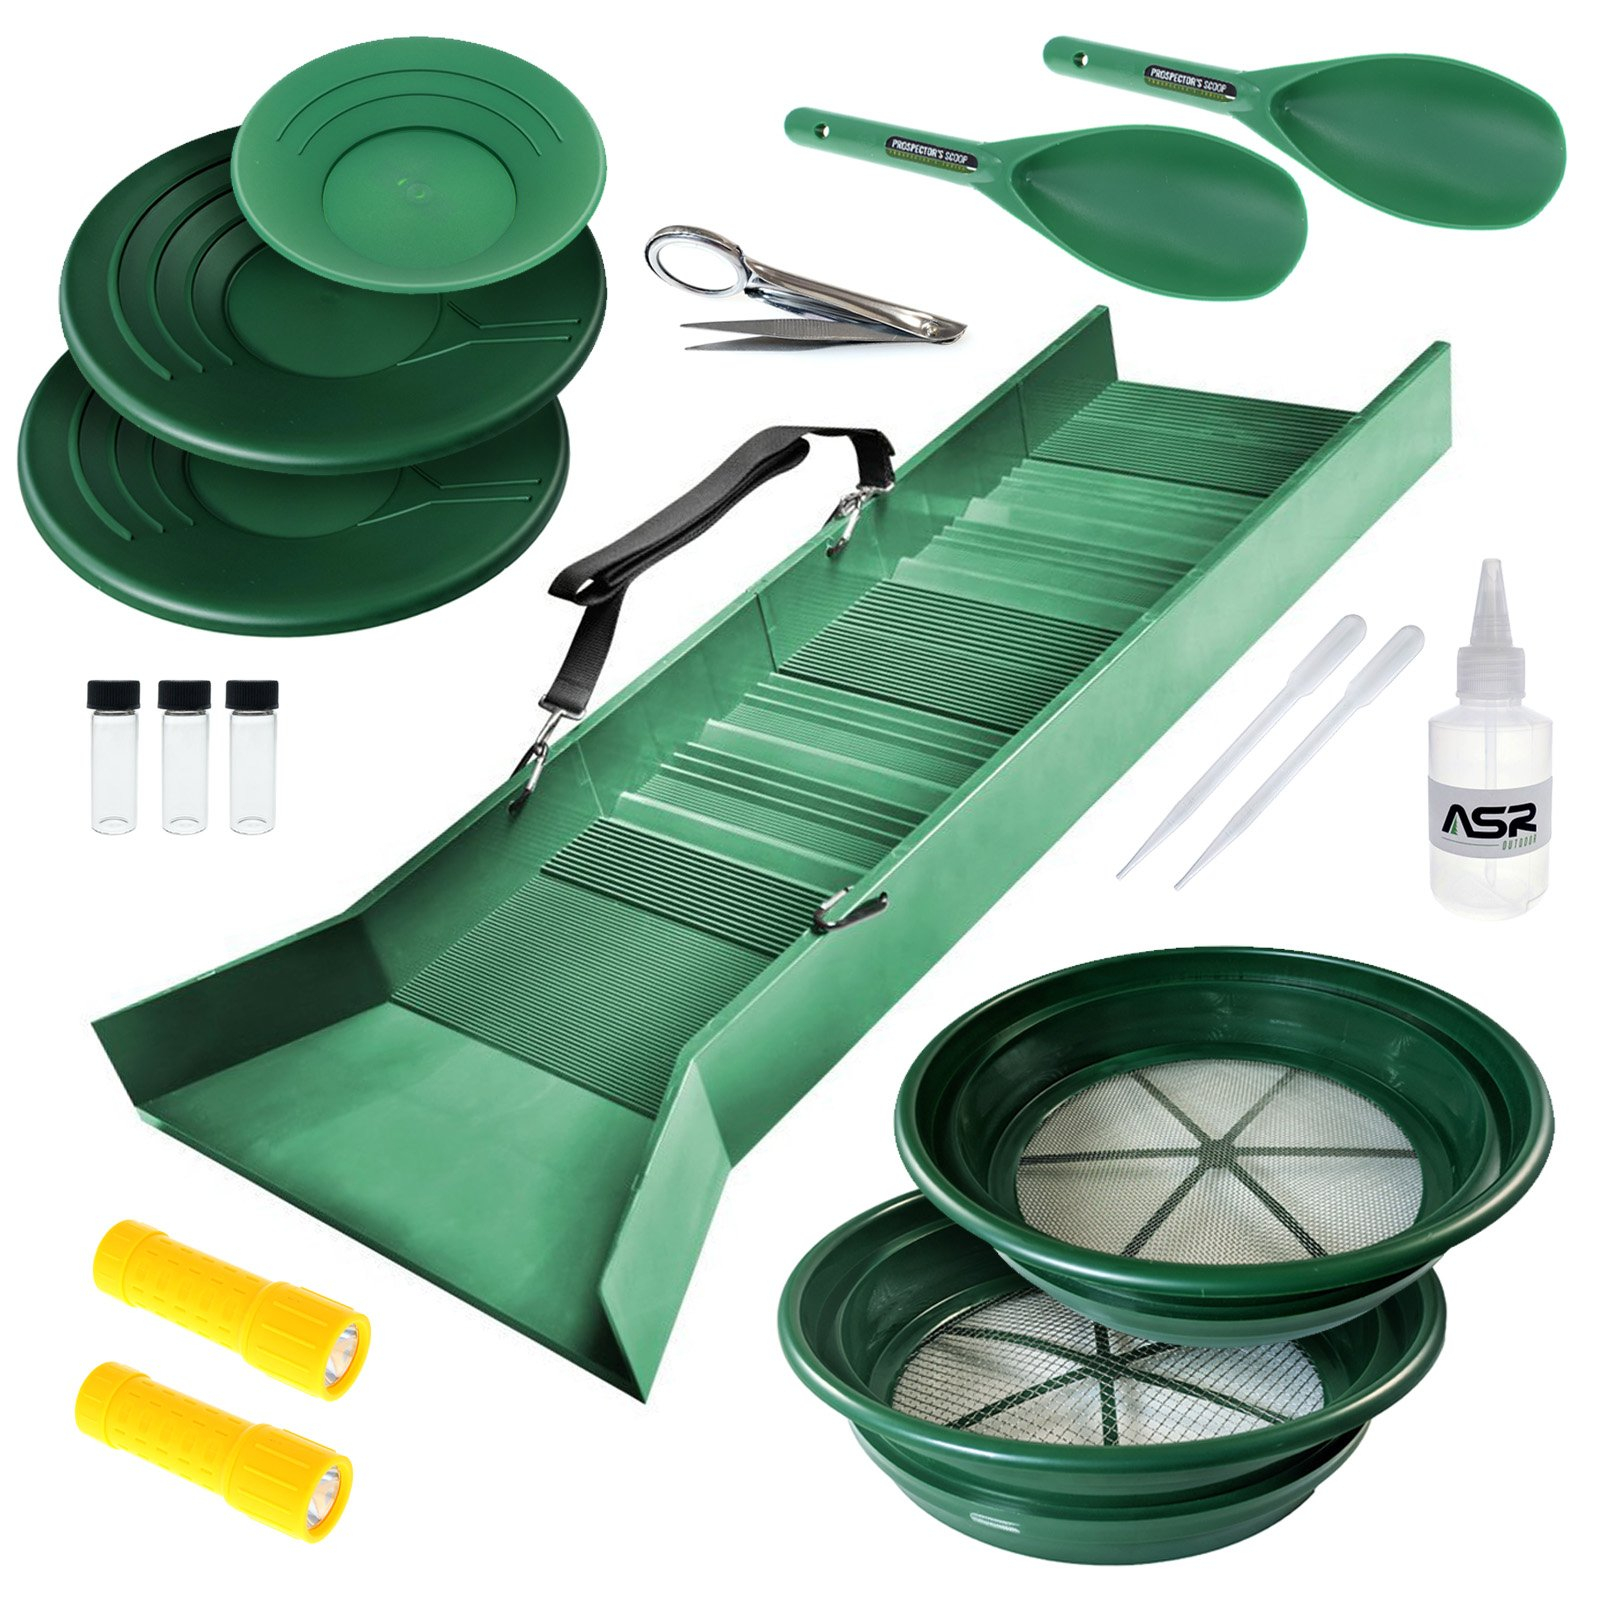 ASR Outdoor Deluxe Sluice Box Gold Rush Kit - 17 Piece Set